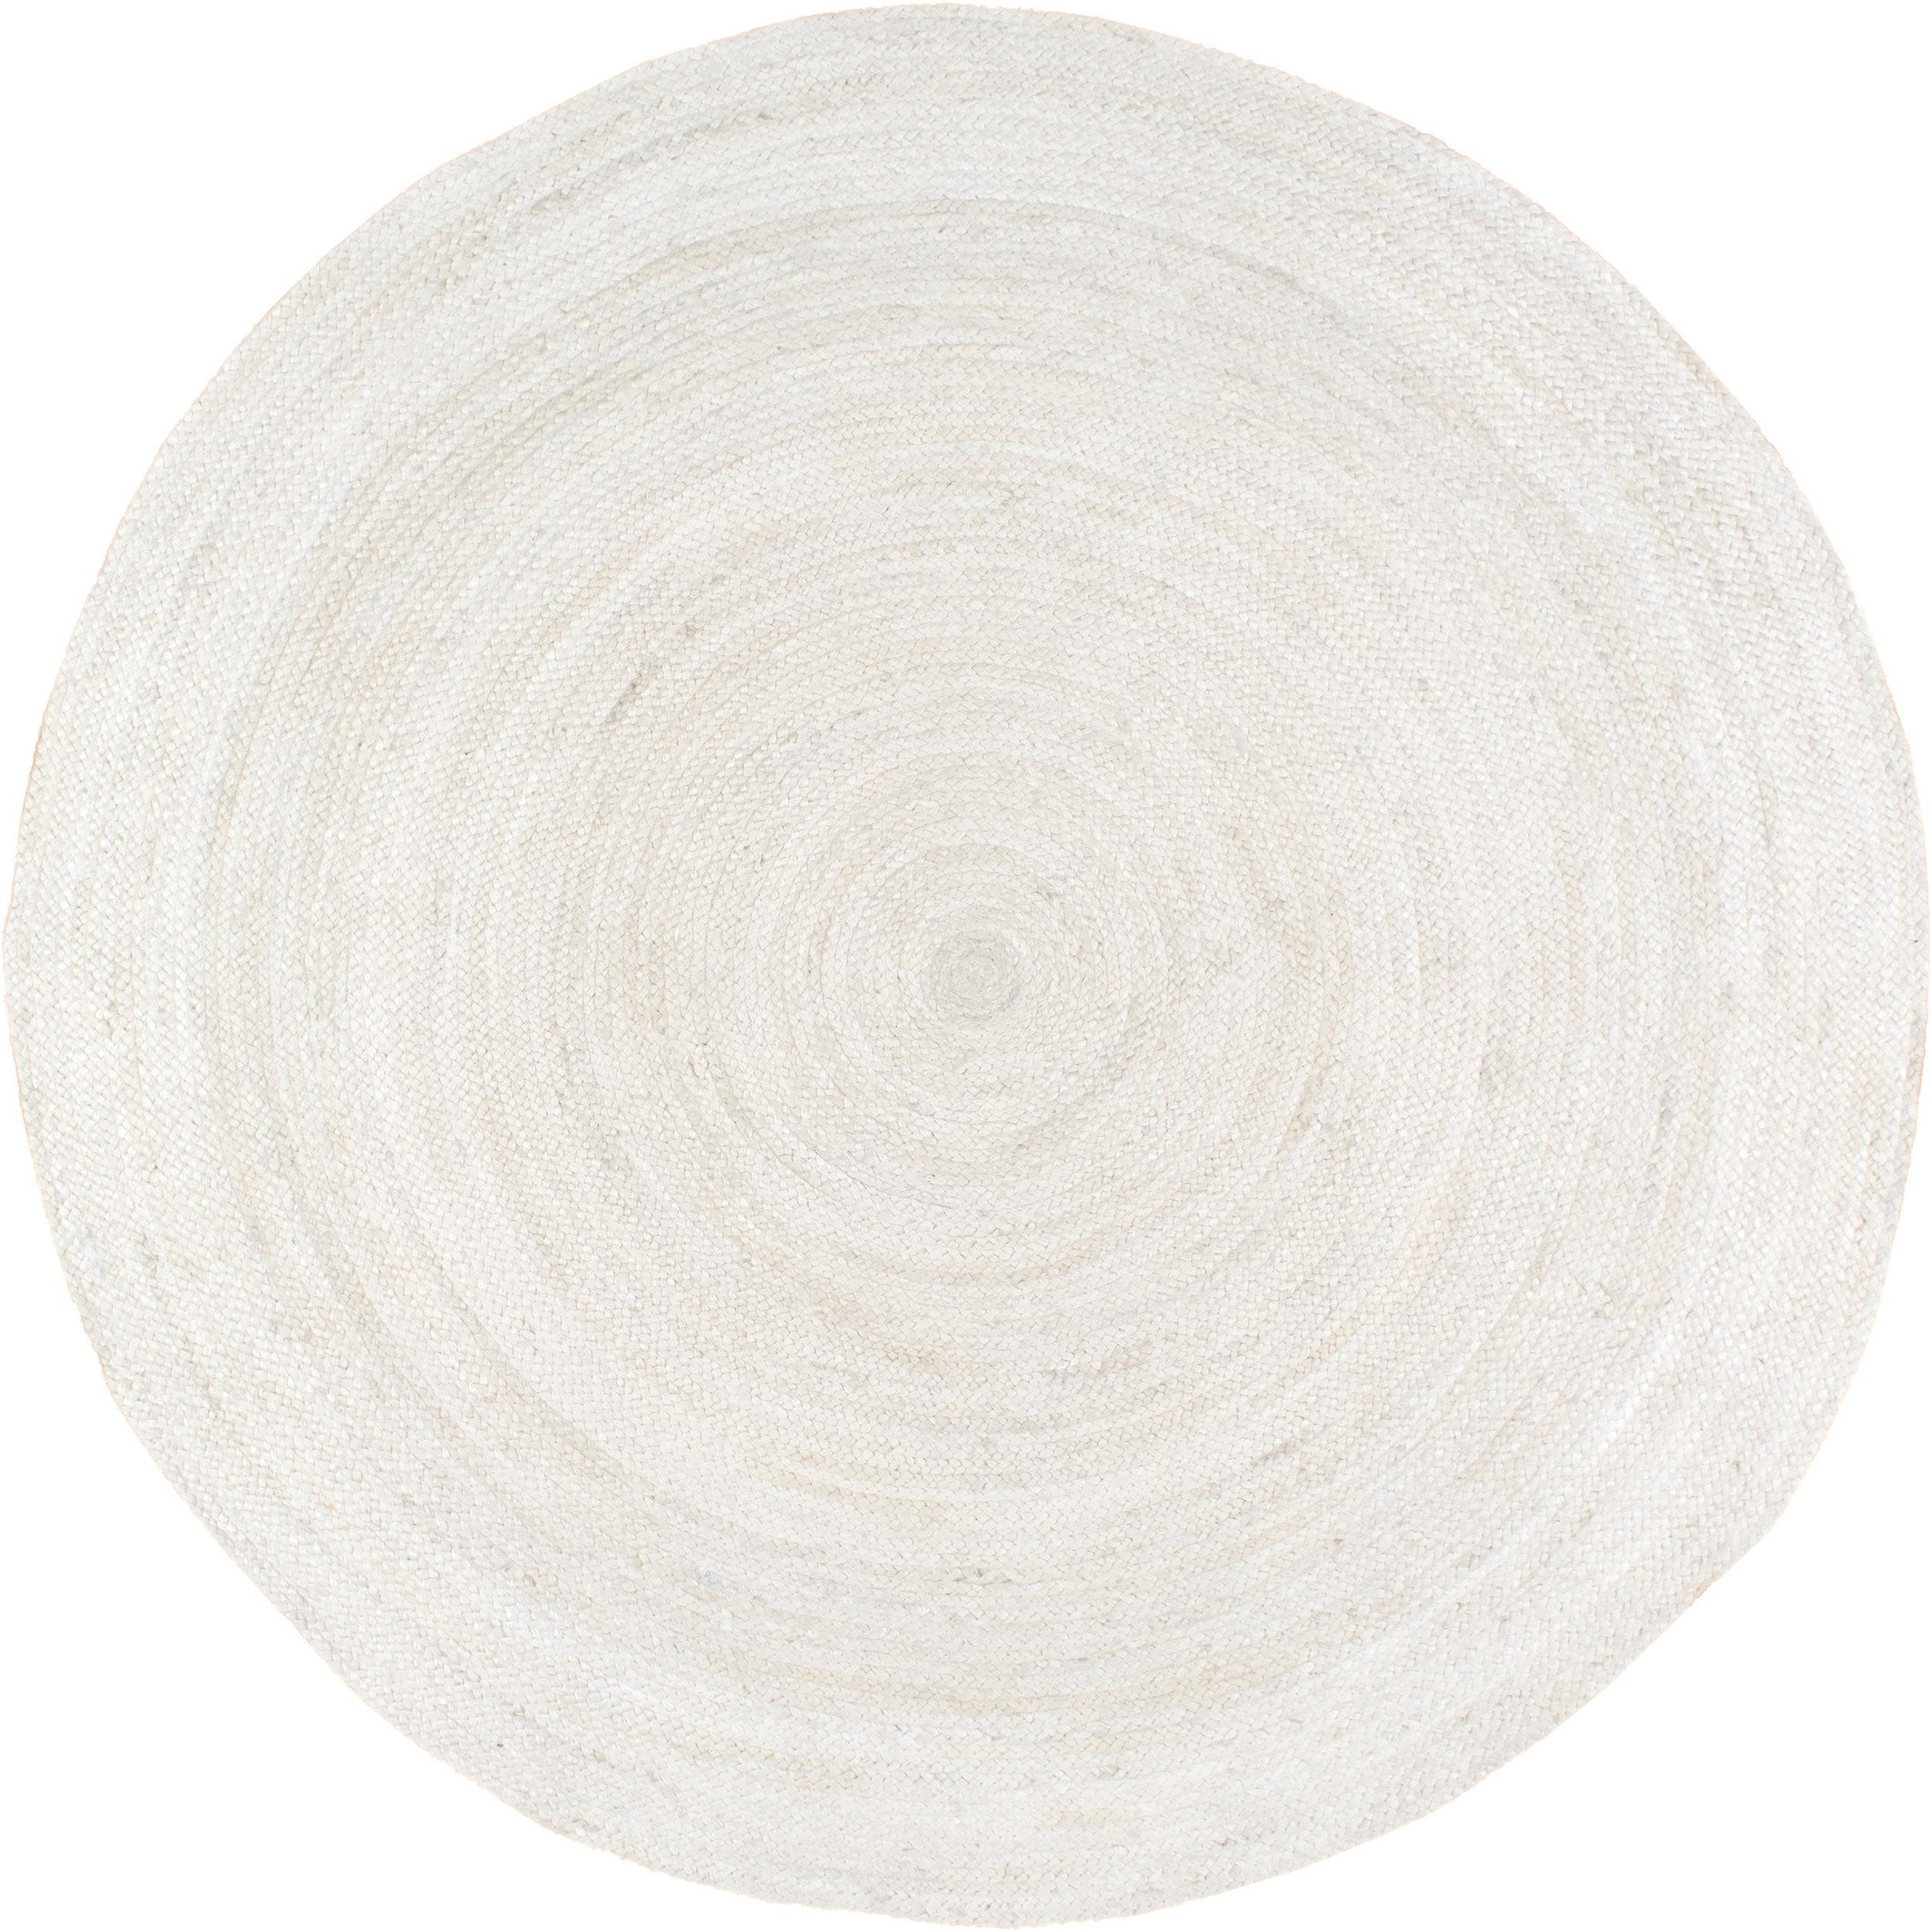 White, Round Rugs & Area Rugs For Less   Overstock